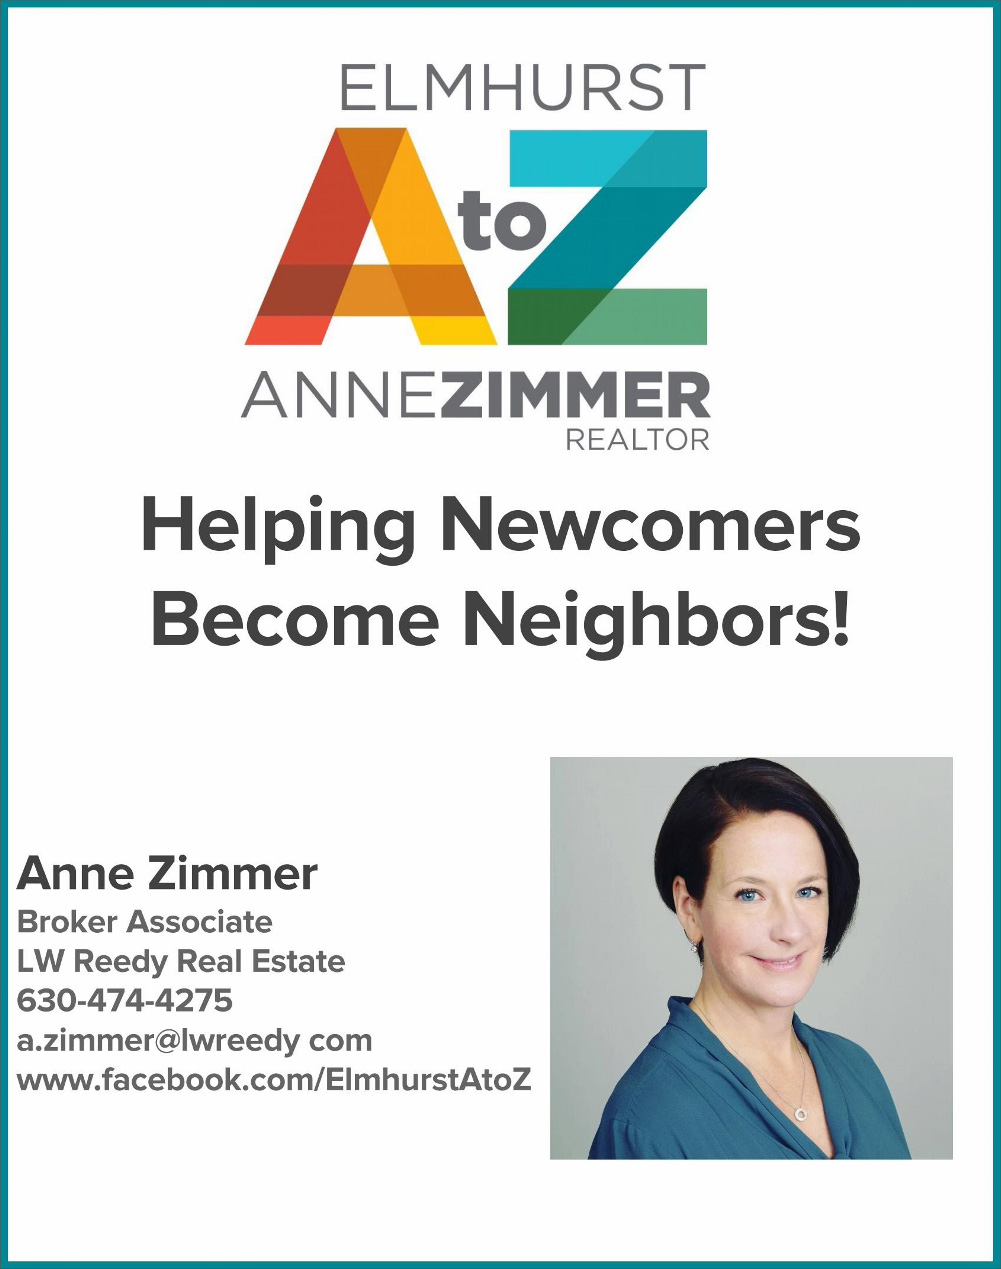 ENNC advertisement for Anne Zimmer